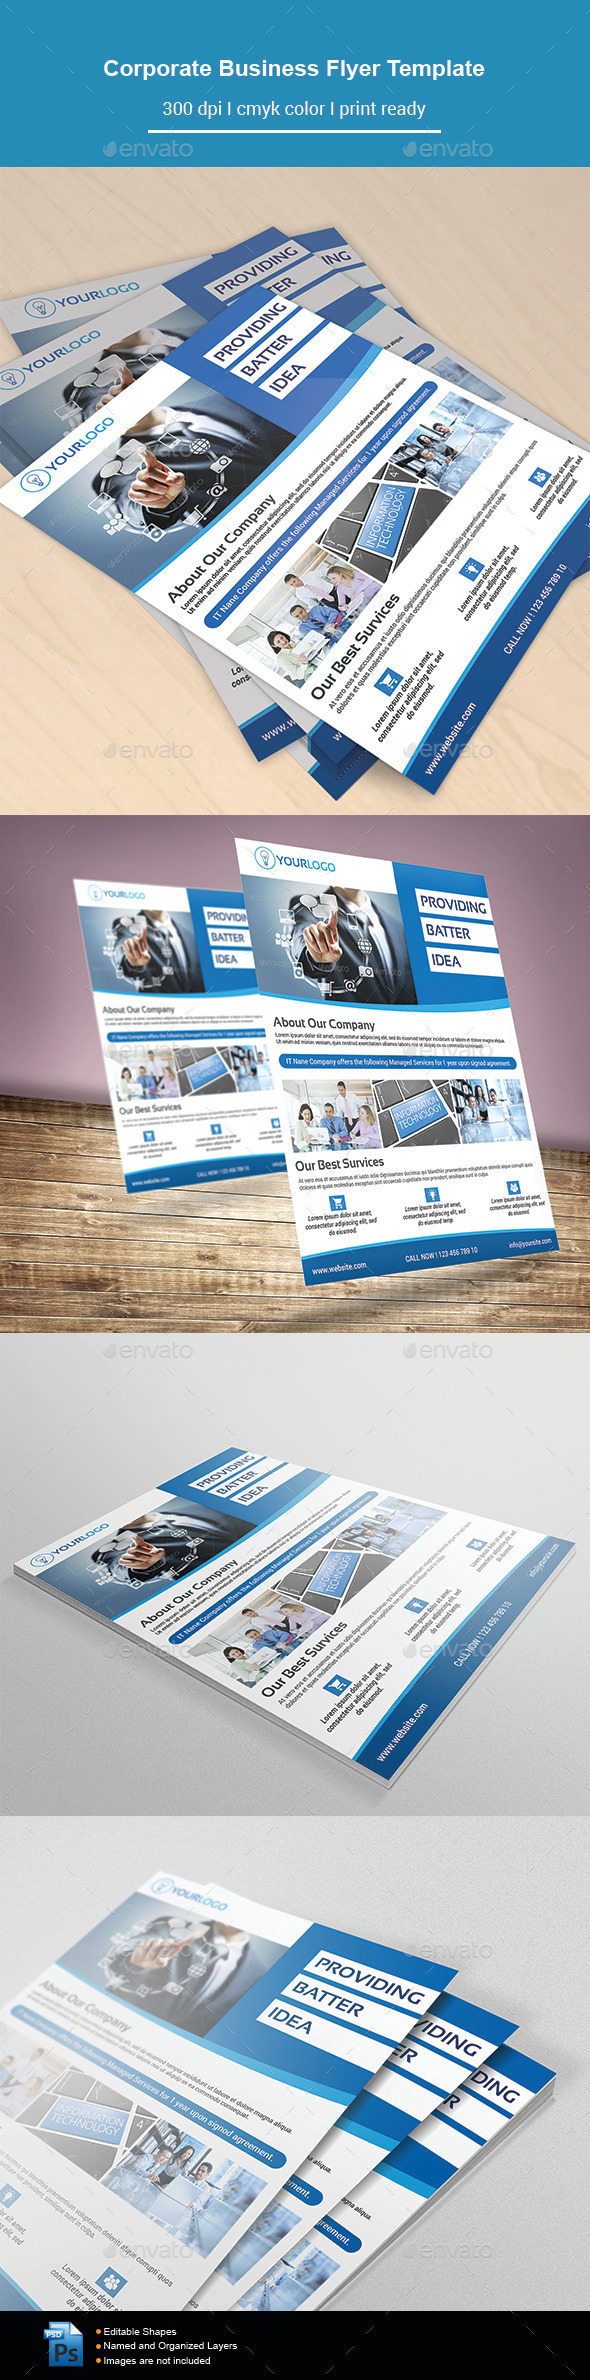 GraphicRiver Corporate Business Flyer Template 11841518